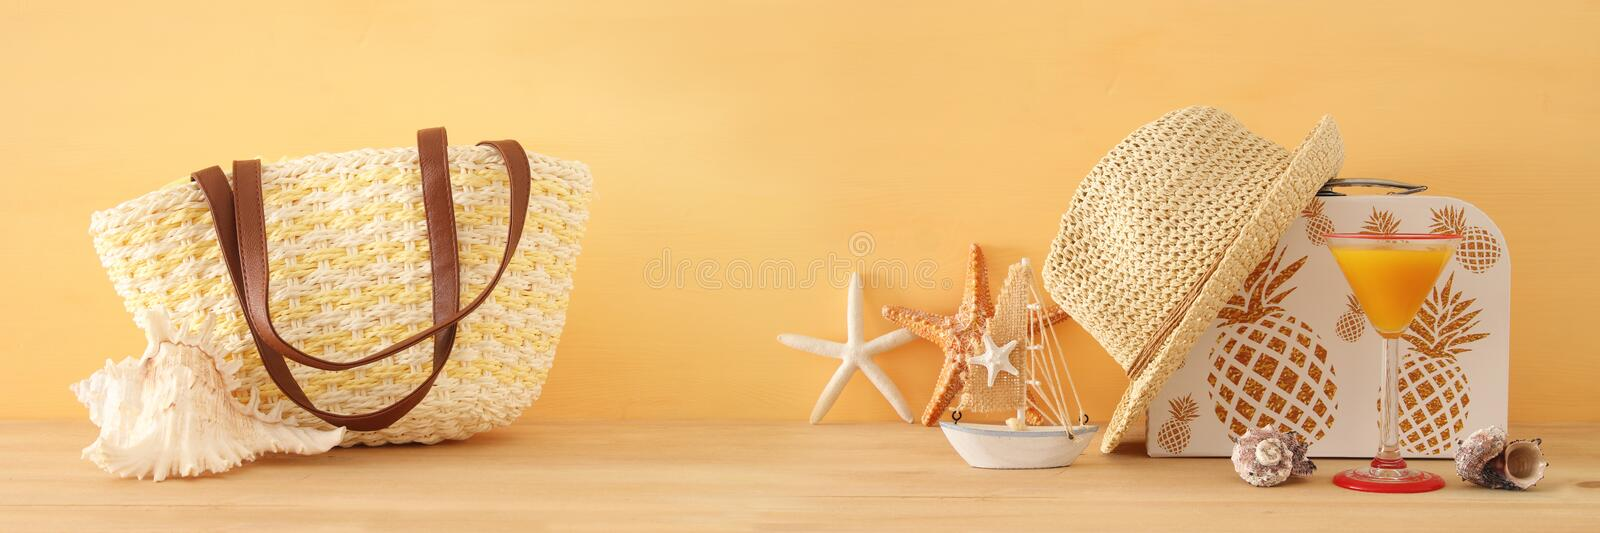 Nautical, vacation and travel banner with sea life style objects over wooden table. Nautical, vacation and travel banner with sea life style objects over wooden stock images